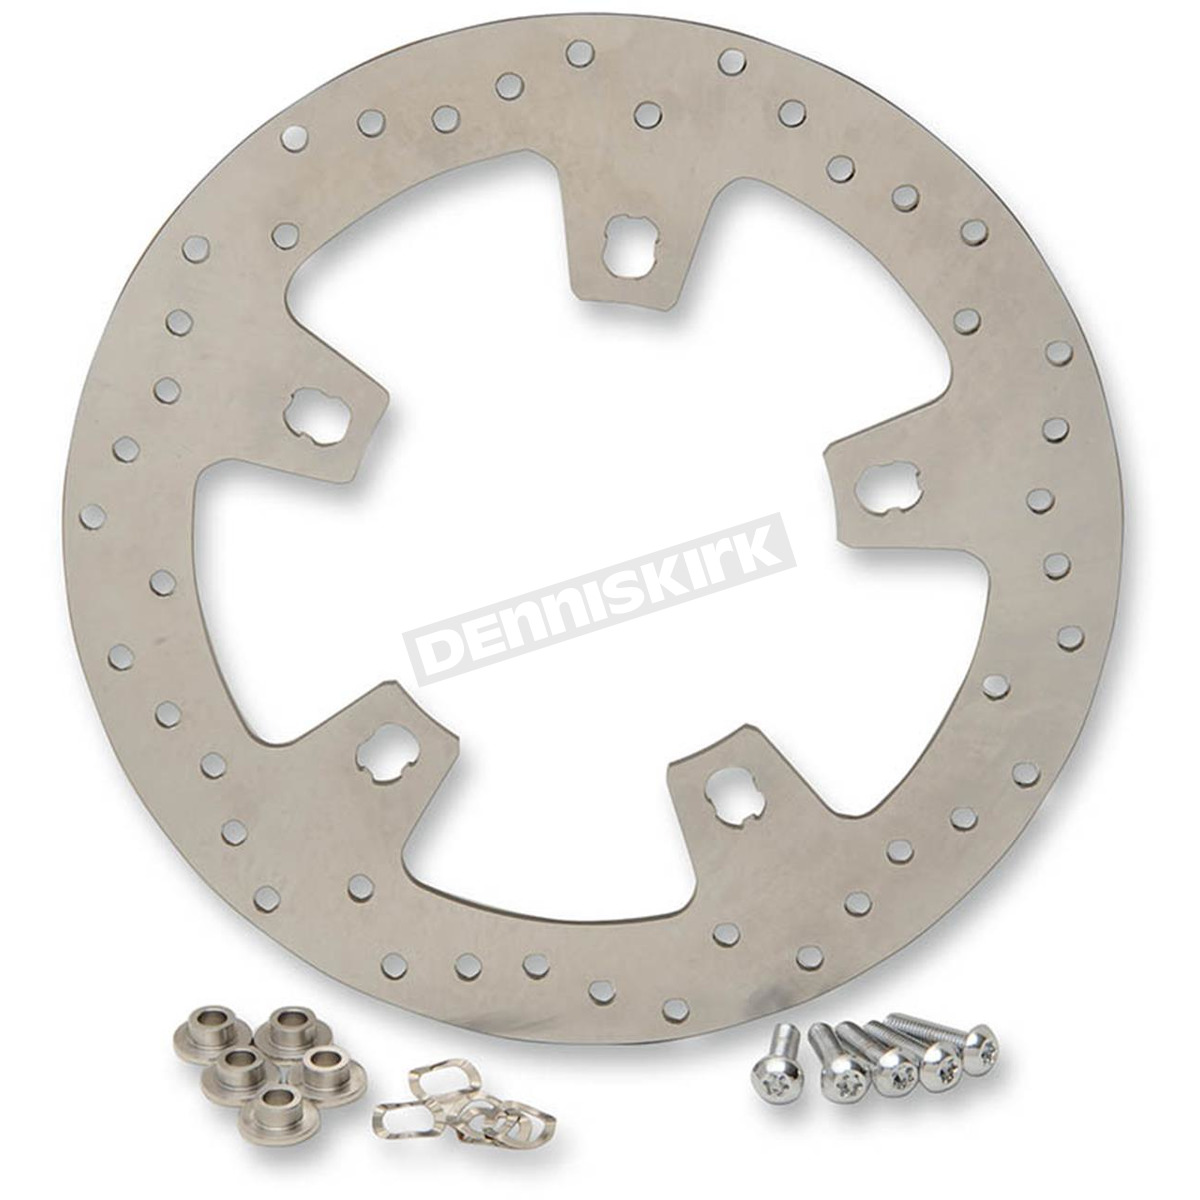 Stainless Brake Rotors : Drag specialties in stainless steel drilled front